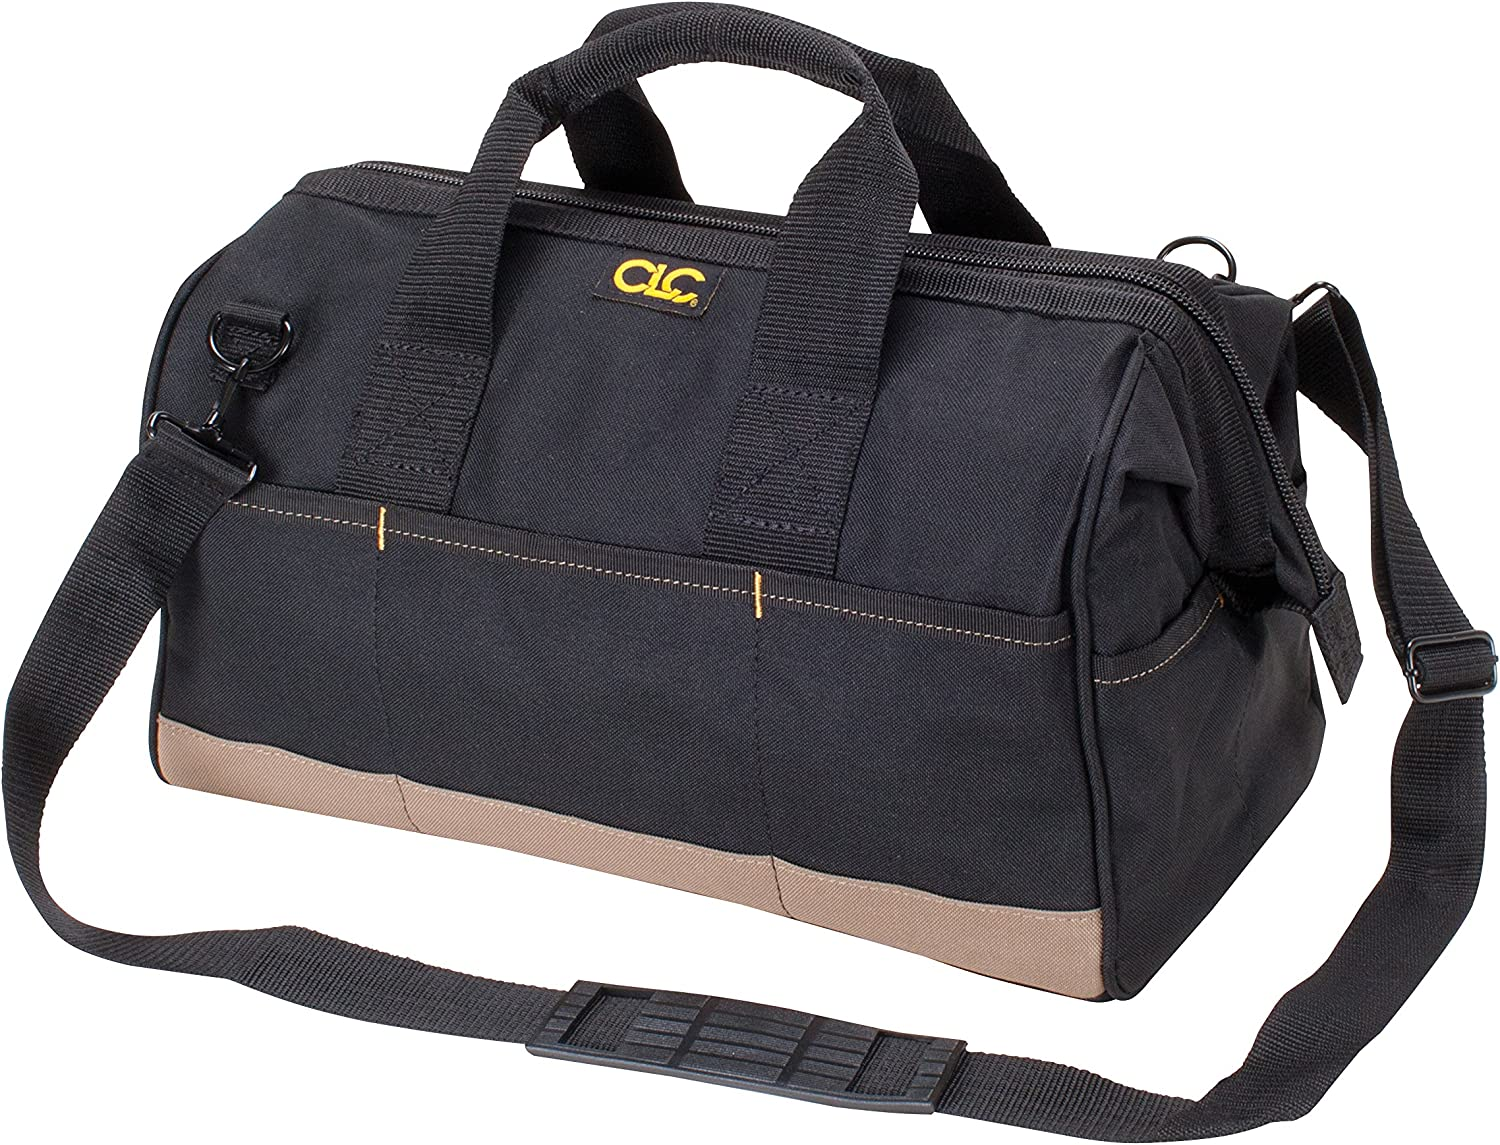 H Black W x 14 in Polyester  Tool Box  8.5 in CLC  12 in